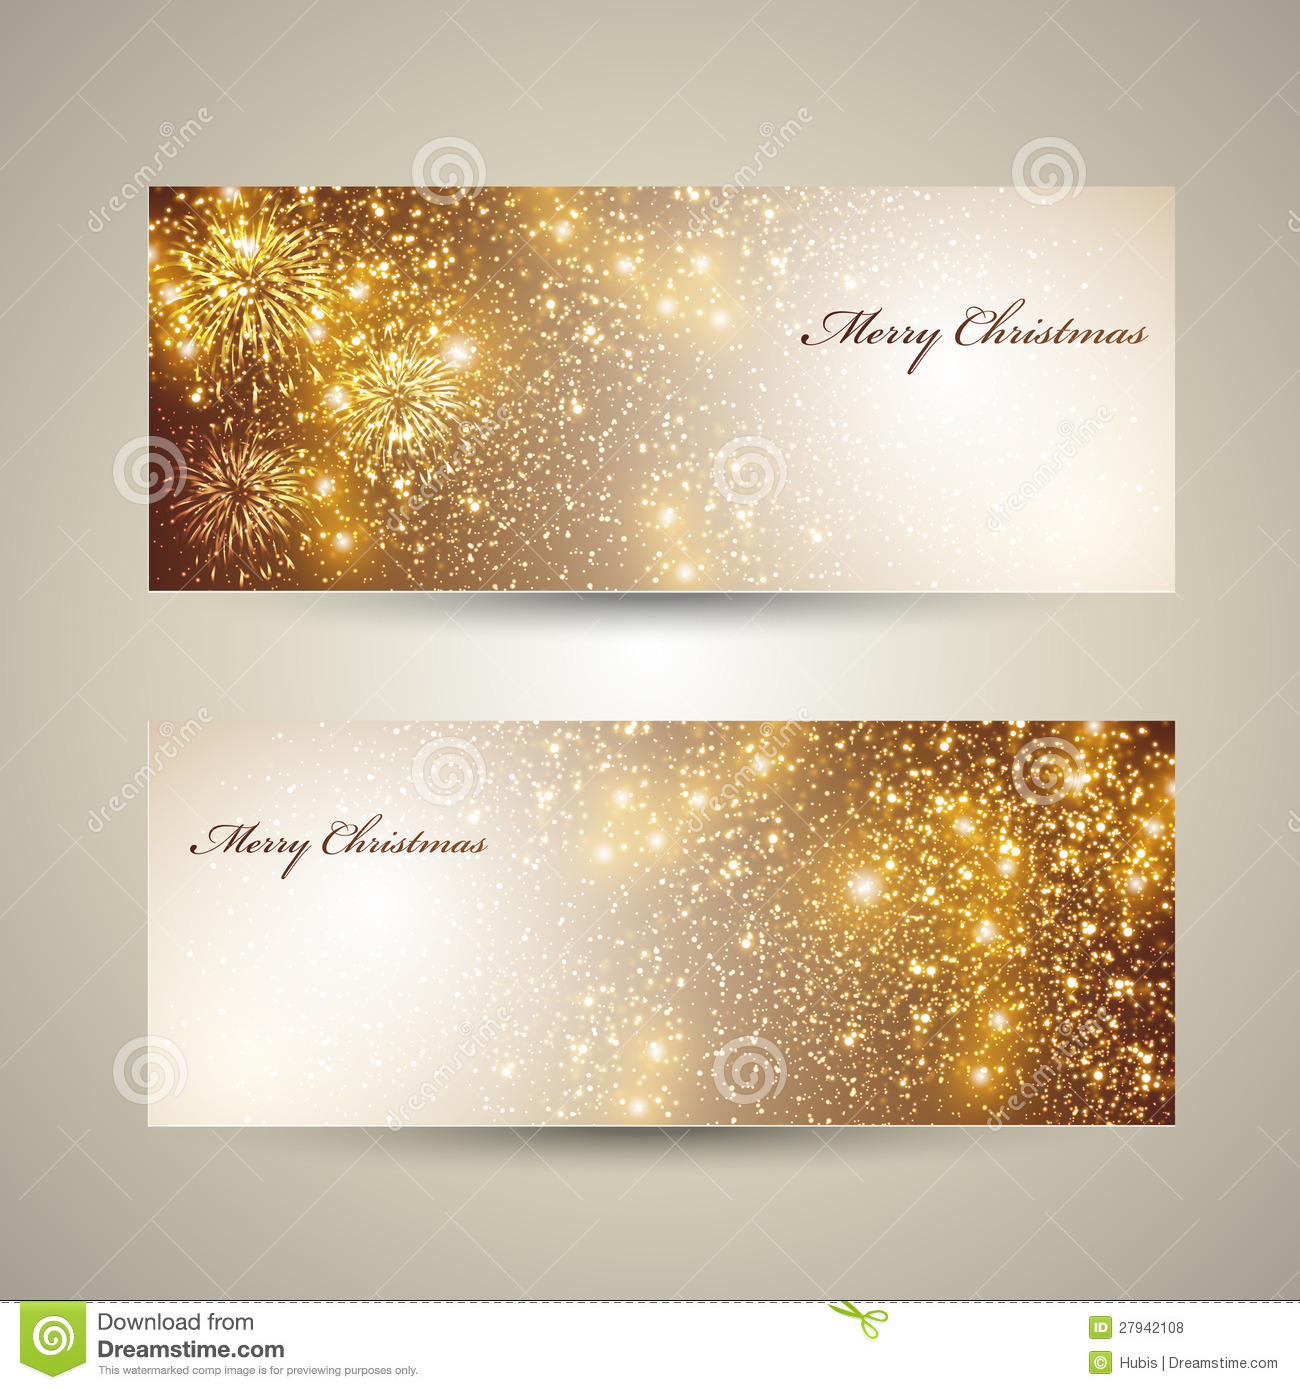 Classy Christmas Banners Outside Banners